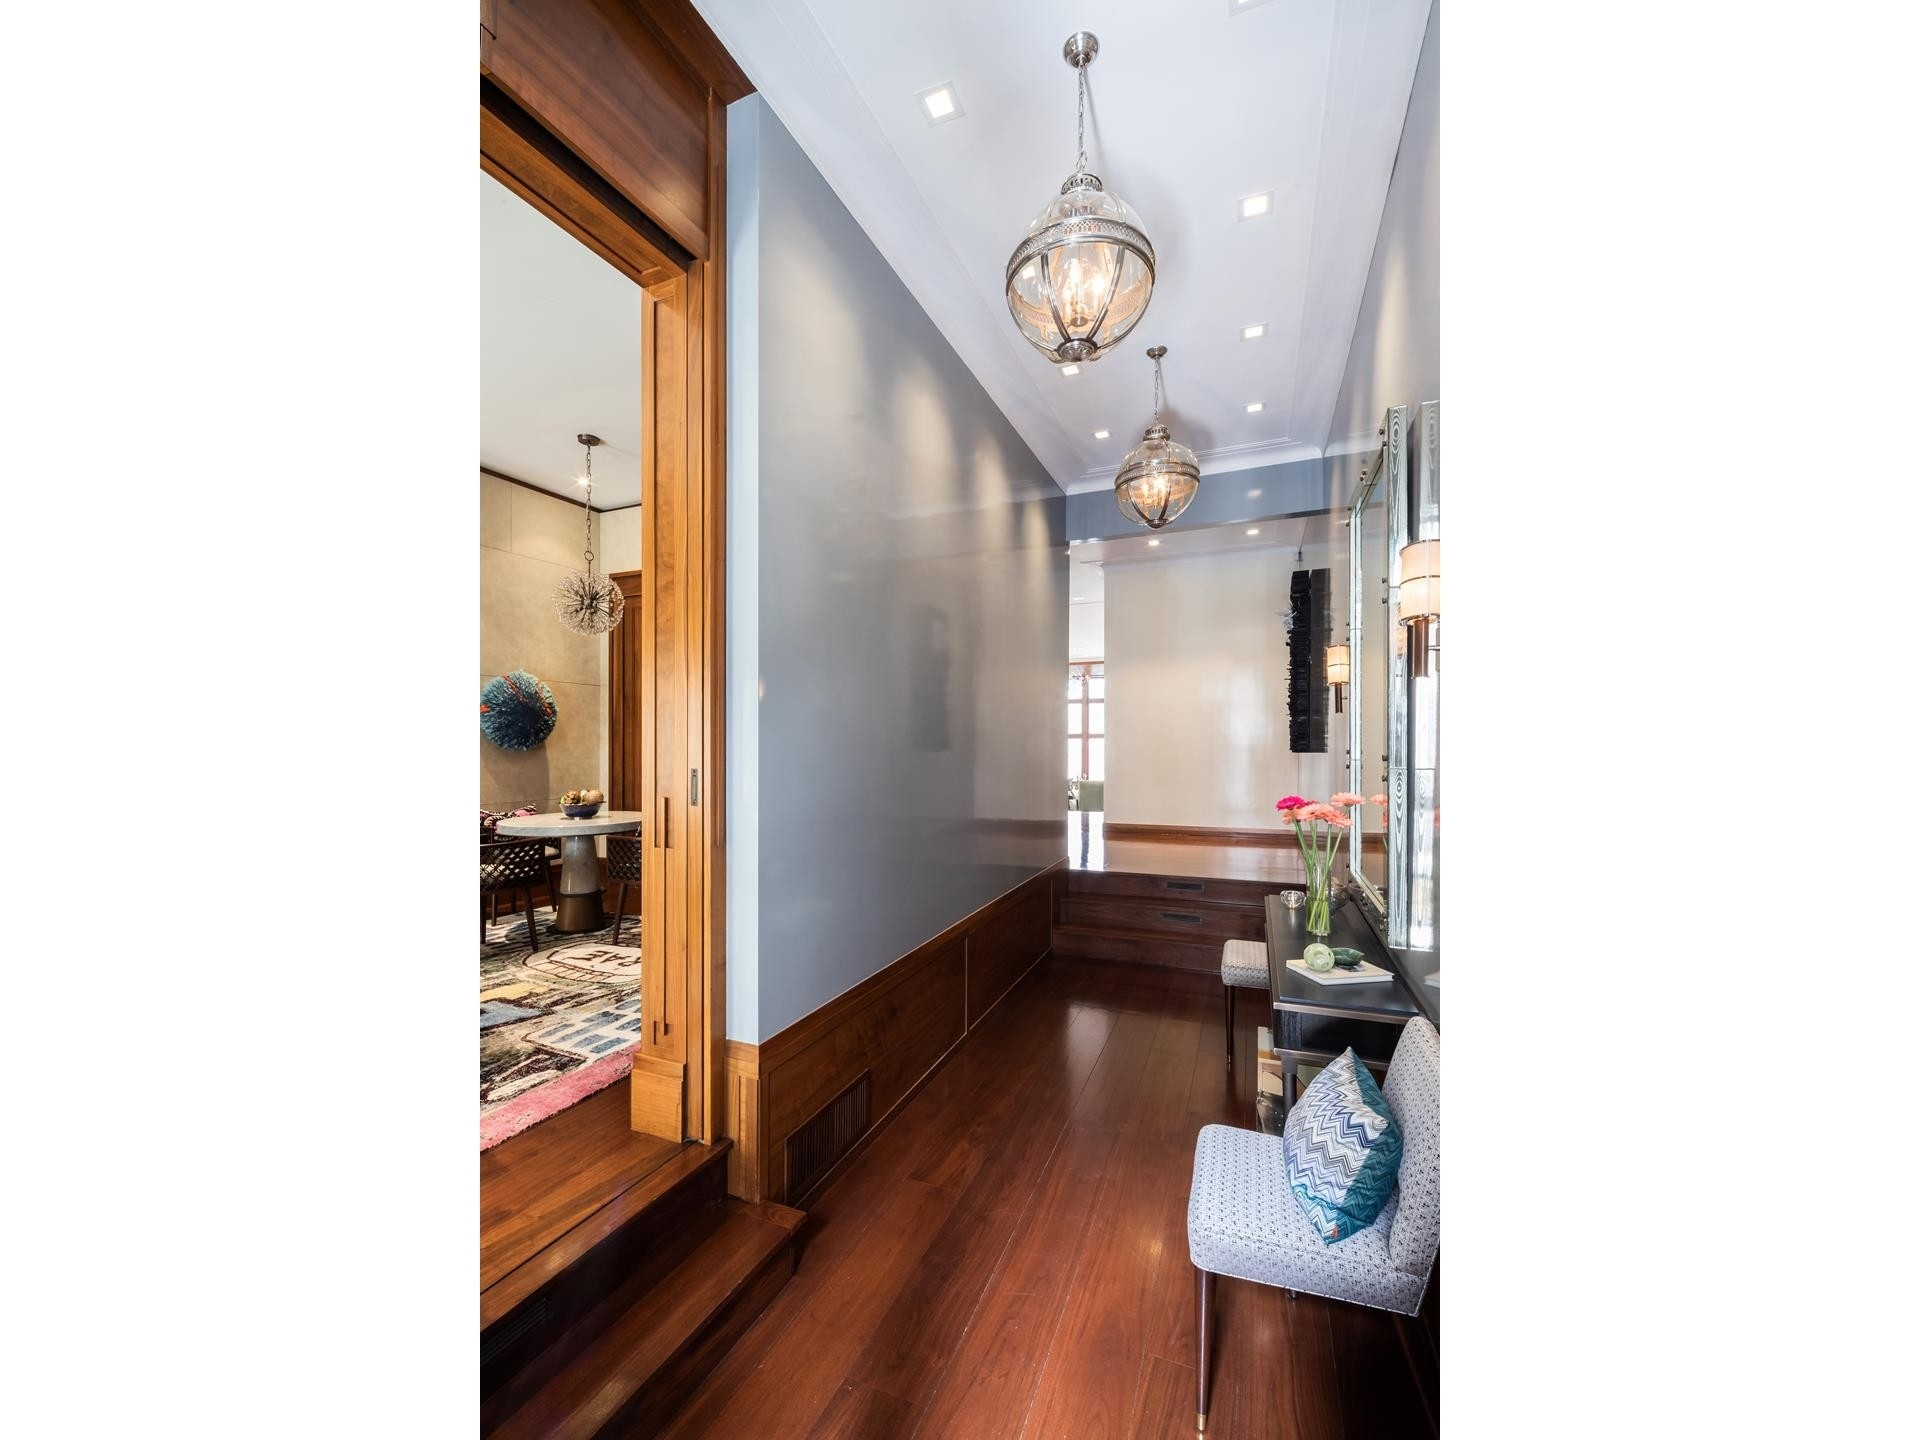 4. Single Family Townhouse for Sale at 159 E 61ST ST , TOWNHOUSE Lenox Hill, New York, NY 10065